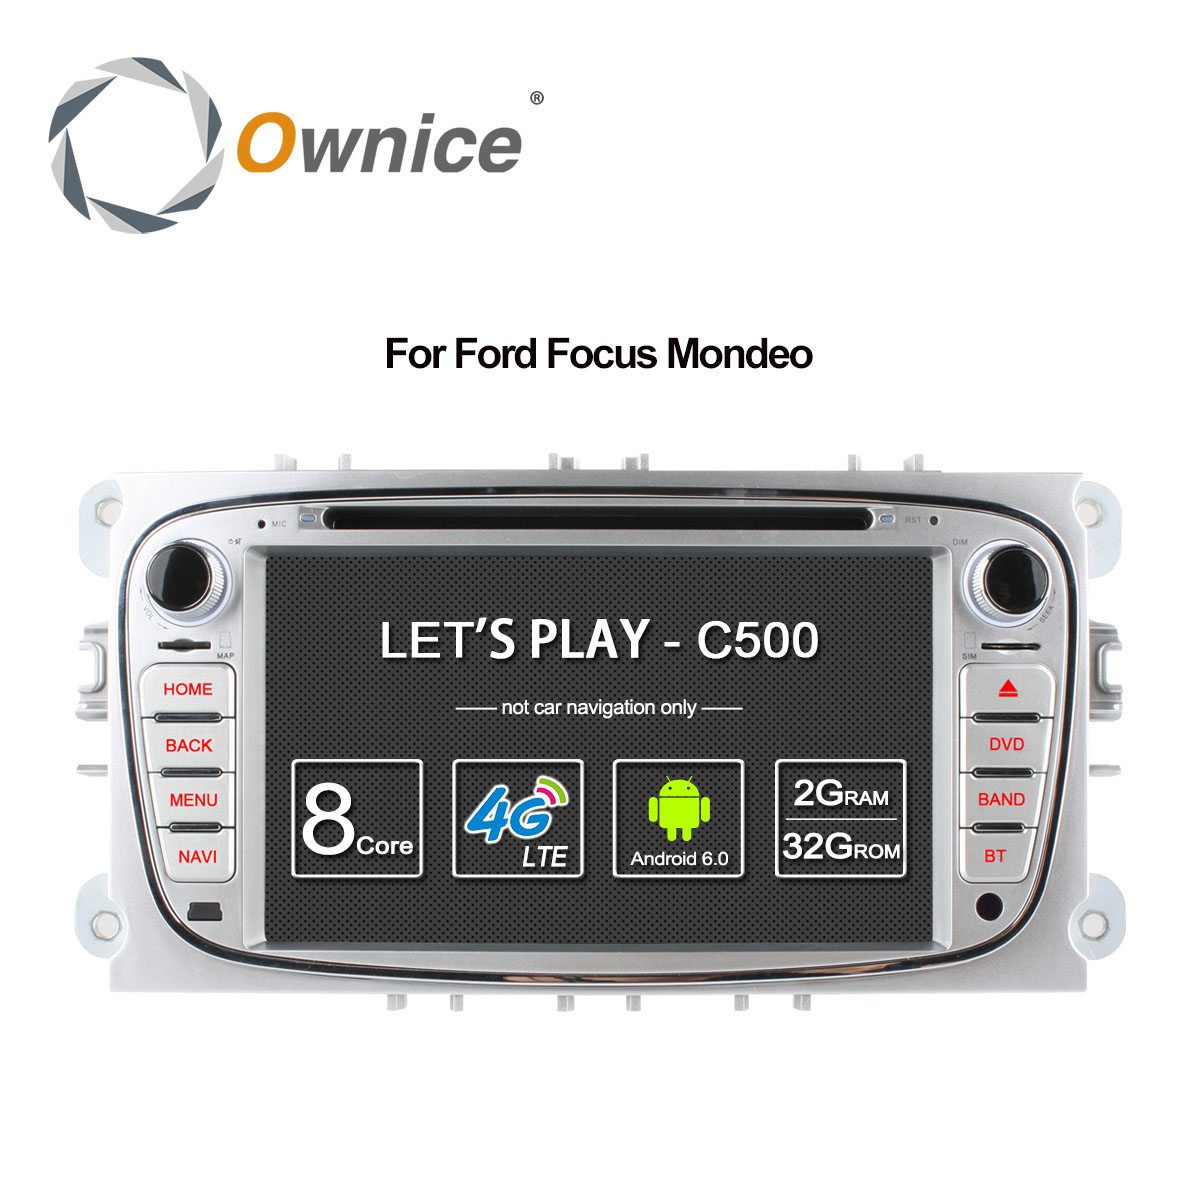 Ownice C500 4G LTE Android 6.0 Octa 8 Core Car DVD Player GPS For FORD Mondeo S-MAX Connect FOCUS 2 2008 2009 2010 2011 32G ROM joyous 7 touch screen android 4 2 dual core car dvd player w gps bt for ford focus focus 2